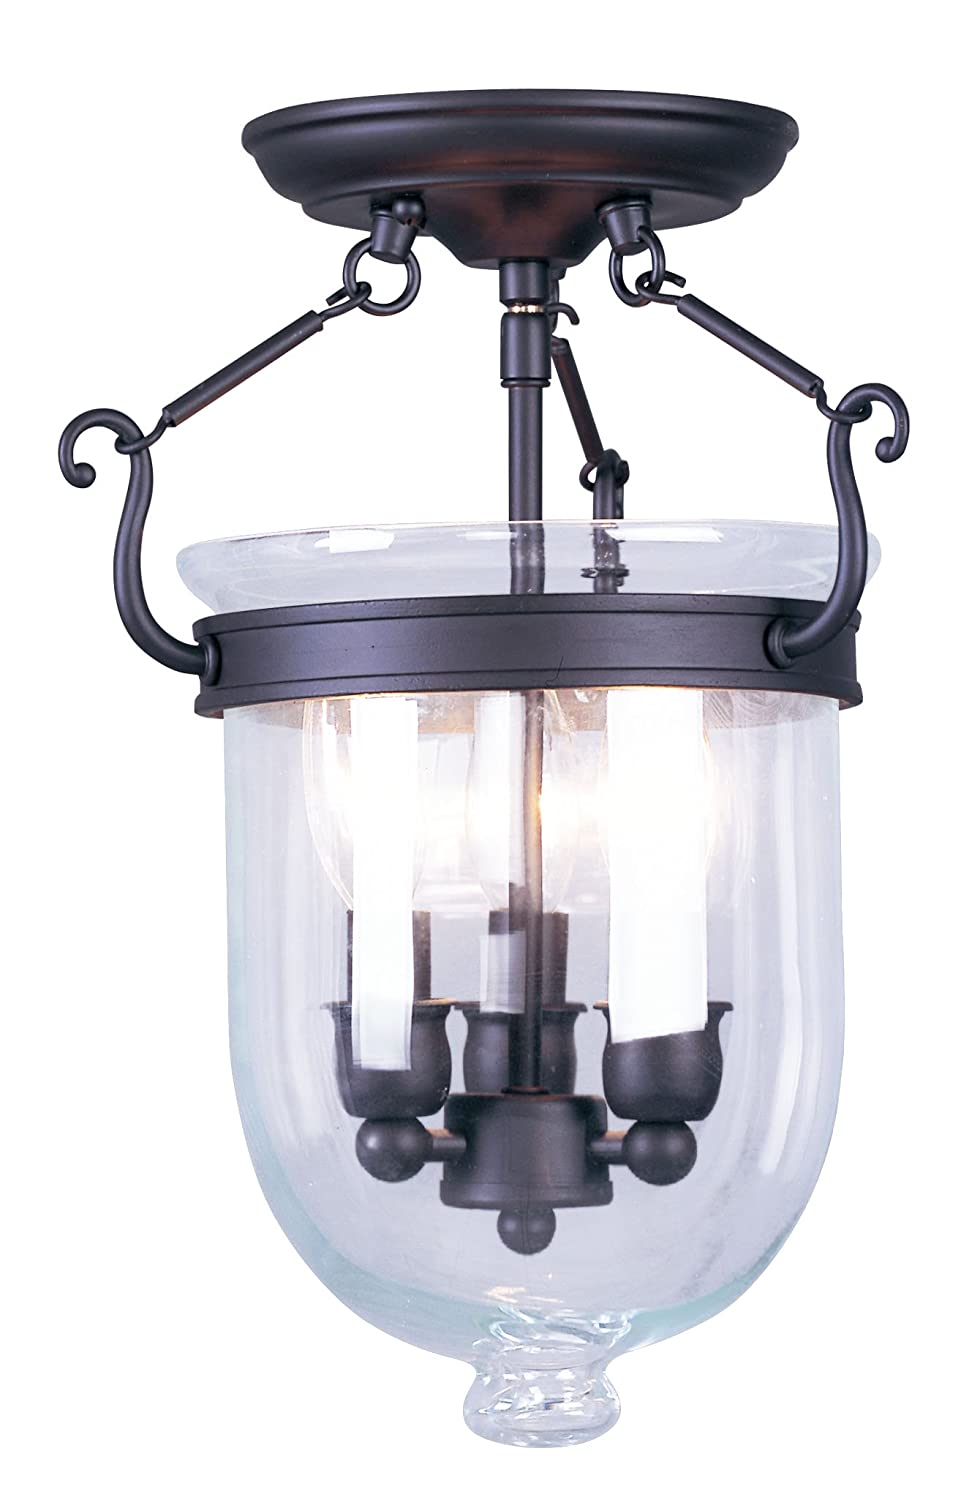 Livex lighting 5061 07 jefferson 3 light bronze bell jar semi flush livex lighting 5061 07 jefferson 3 light bronze bell jar semi flush with clear glass close to ceiling light fixtures amazon arubaitofo Choice Image